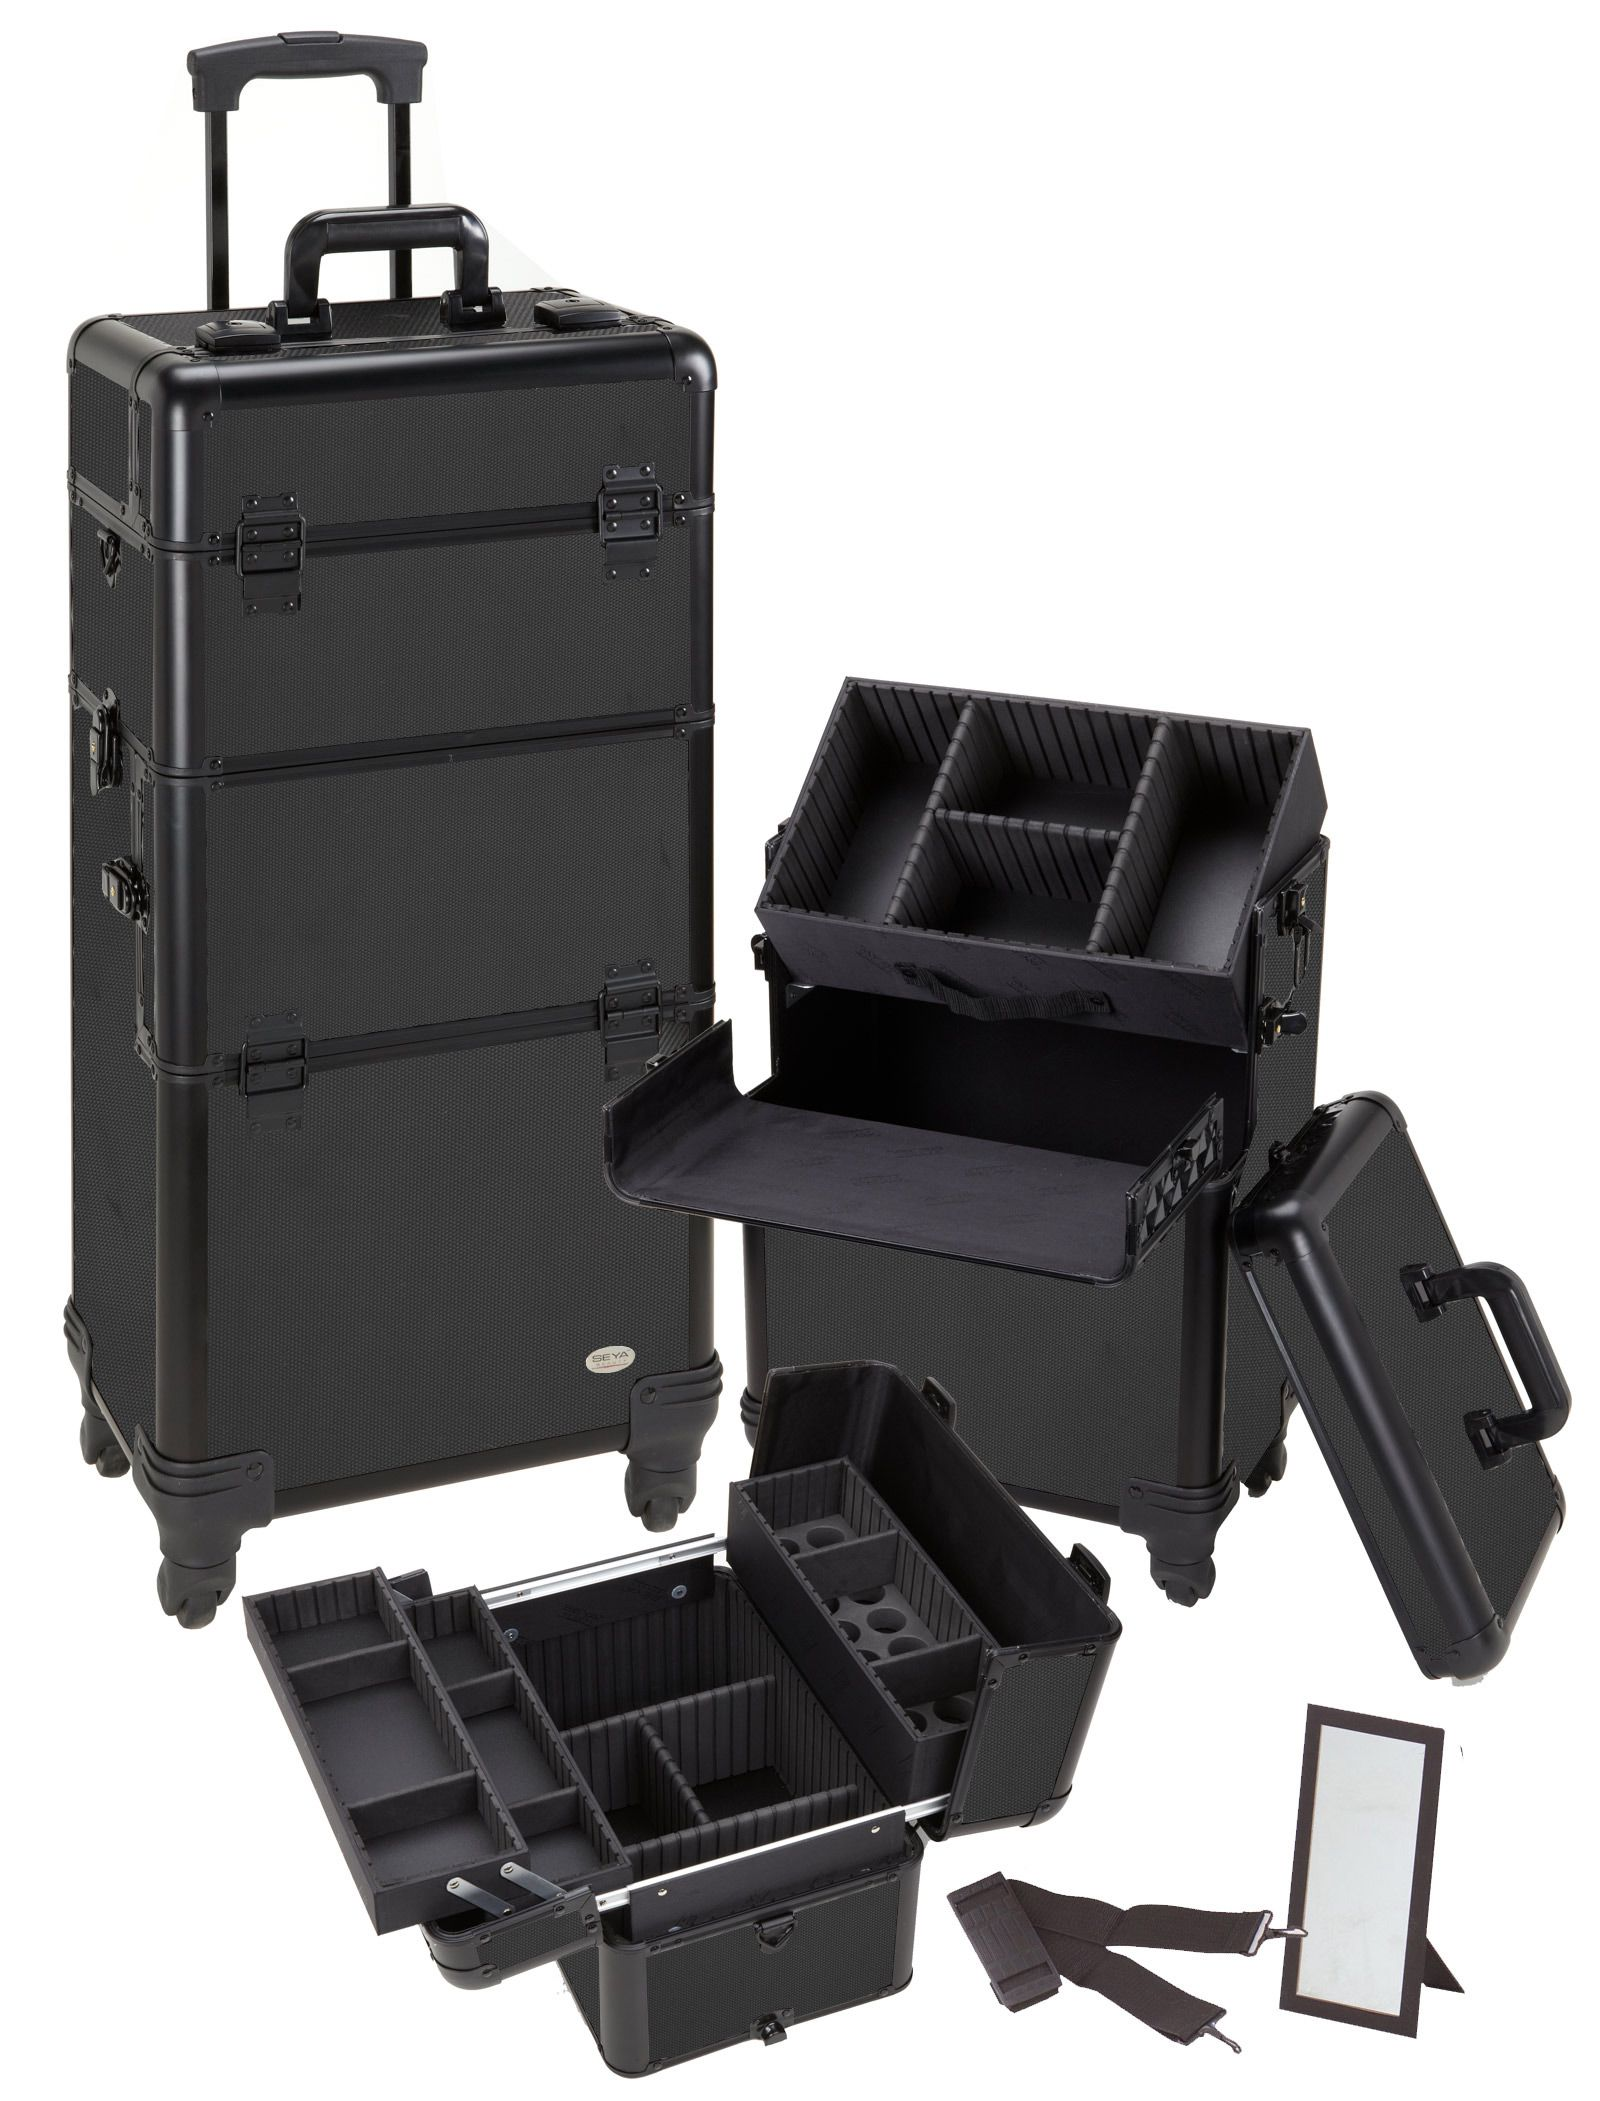 Pro Aluminum Makeup Case All Black 4 Wheeled Spinner, only